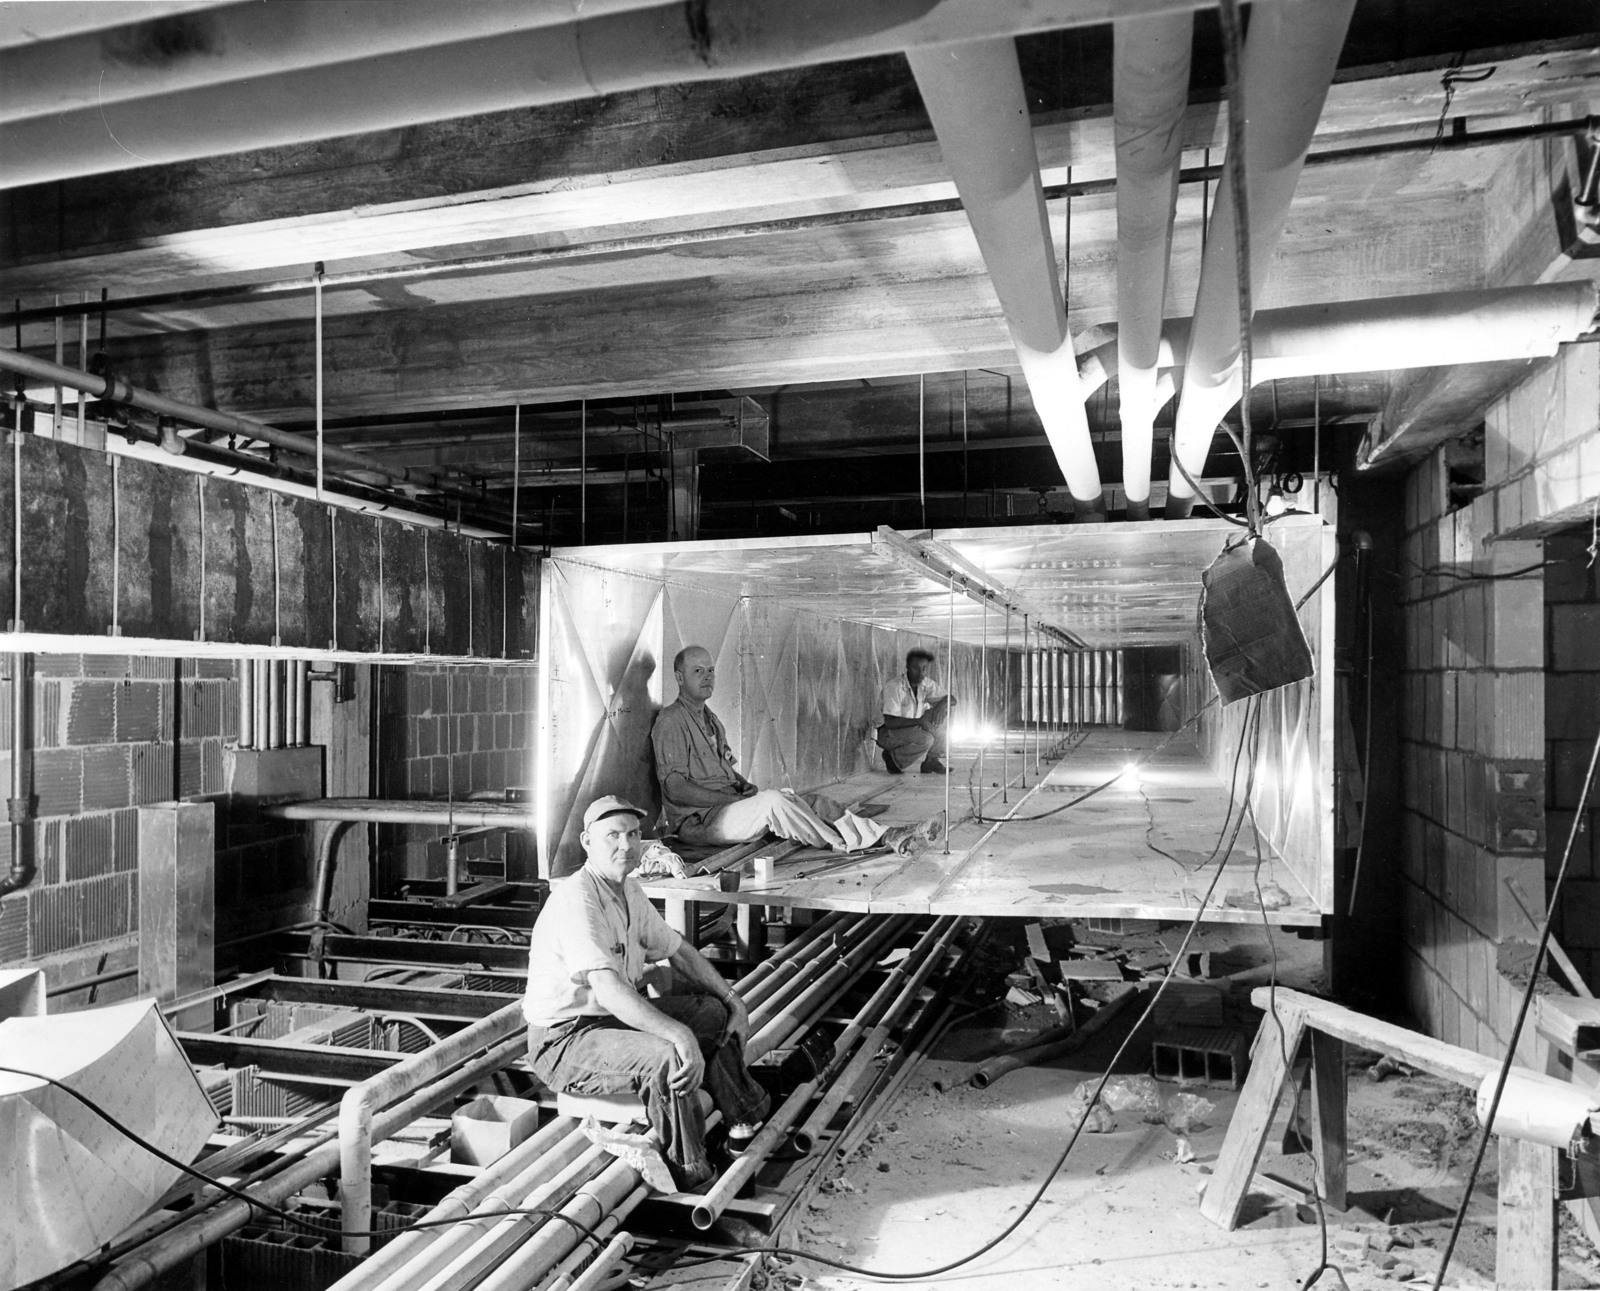 Workers inside Ductwork during the Renovation of the White House